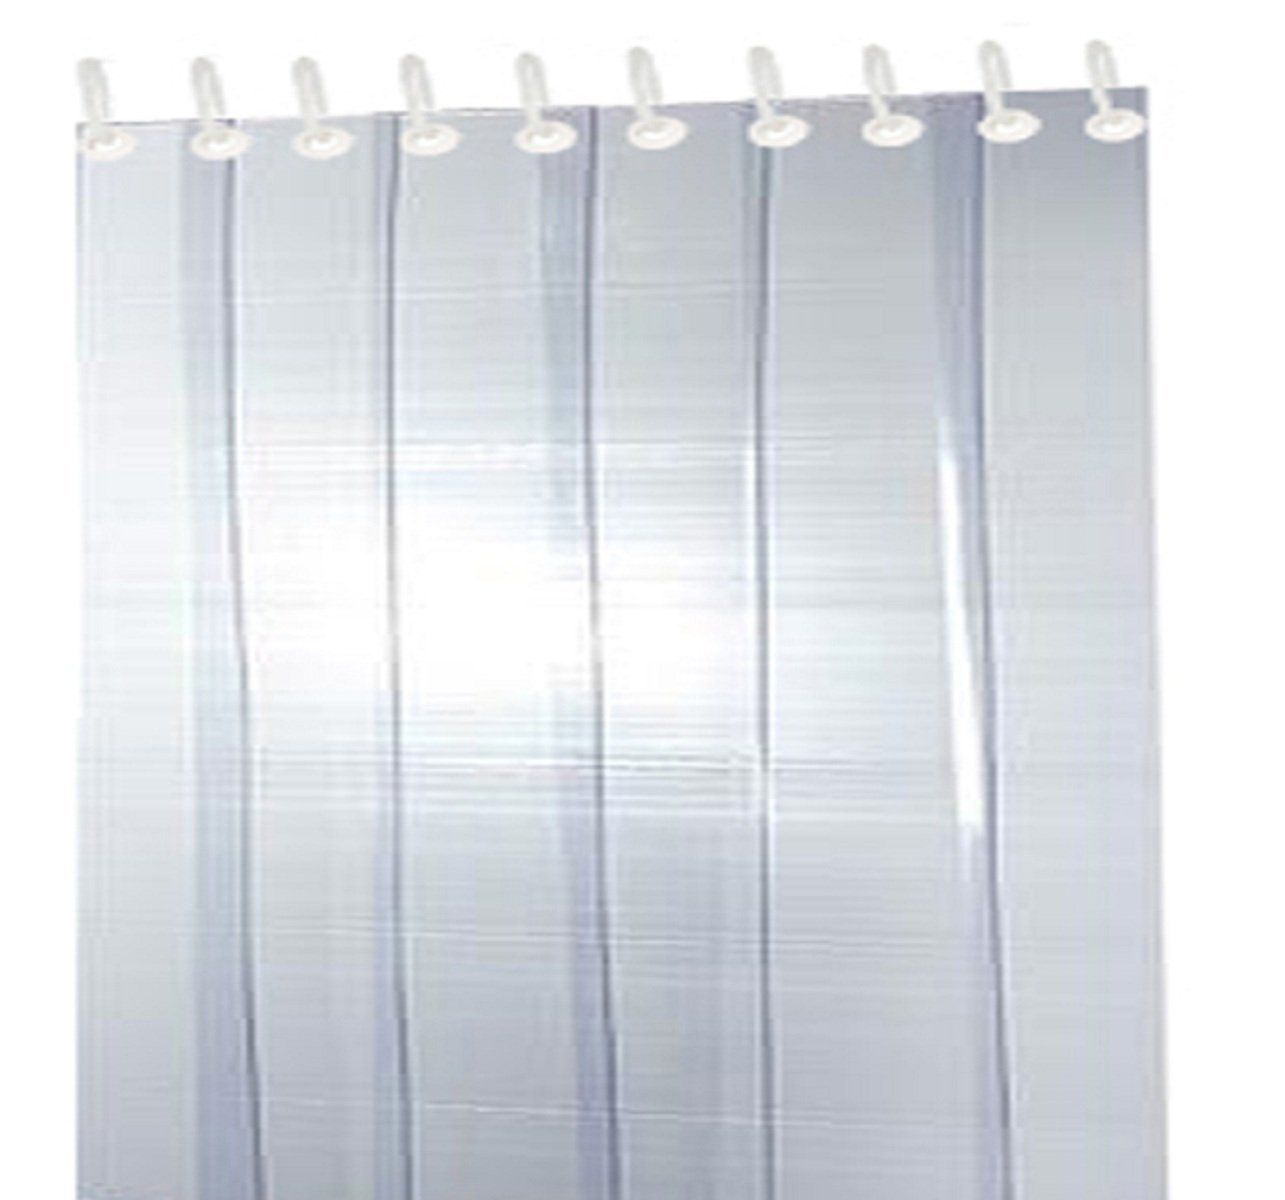 Kuber Industries™ 1 MM Thick PVC 6 Strips AC Curtain for Offices & Shop -9 Feet (Dimension-108*54 Inches) Code- Stripes010